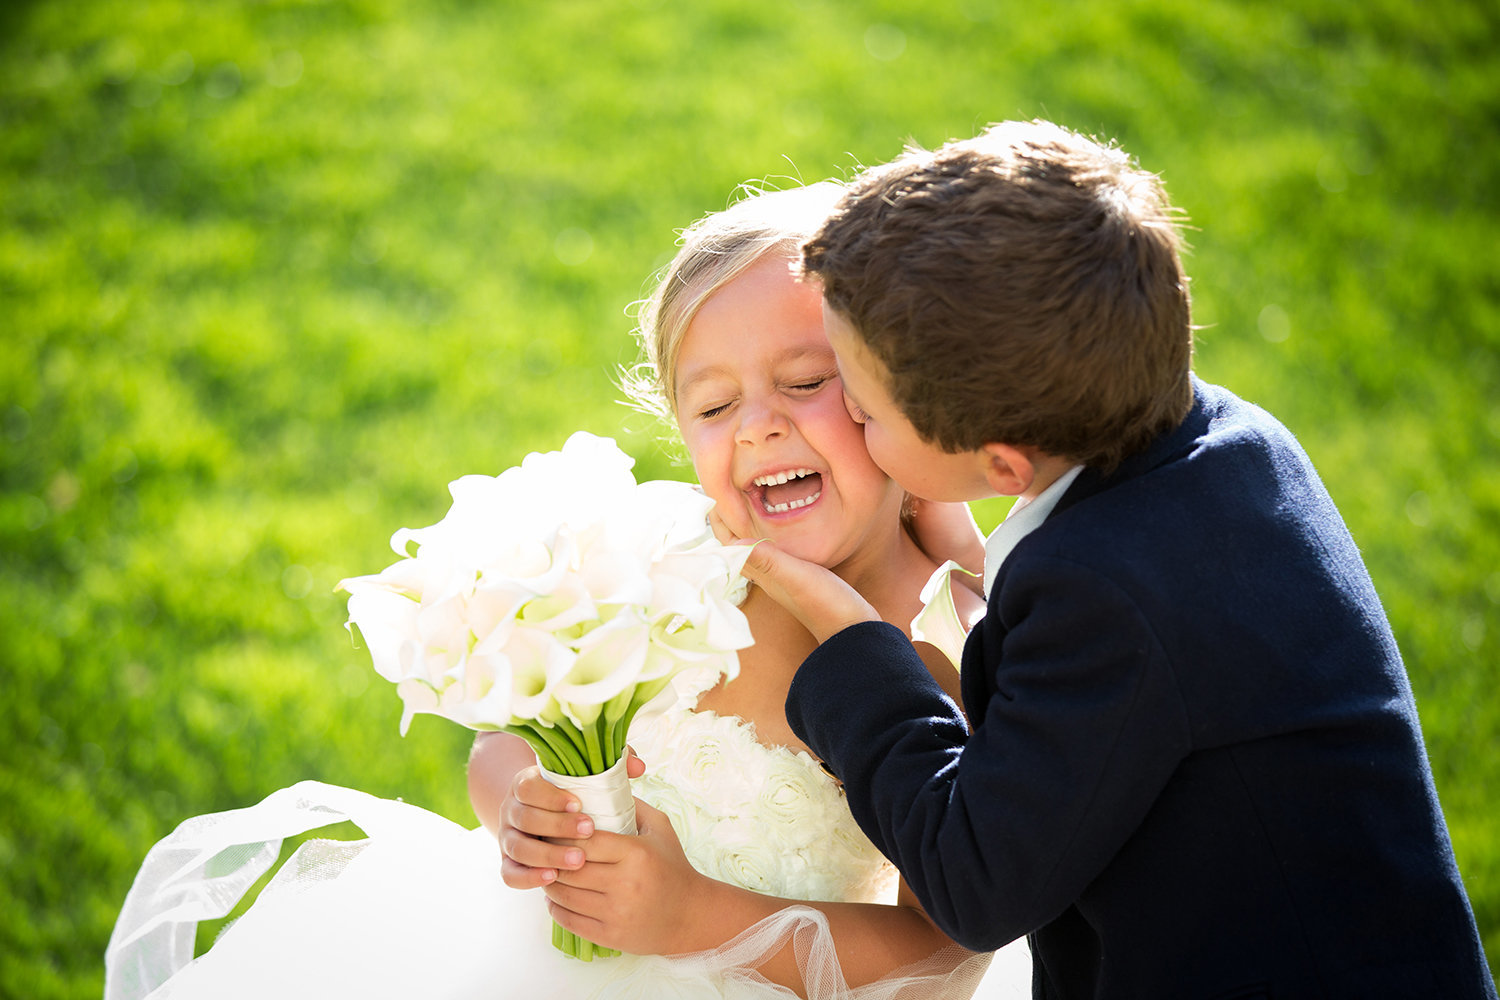 Bahia Resort wedding photos adorable children having fun